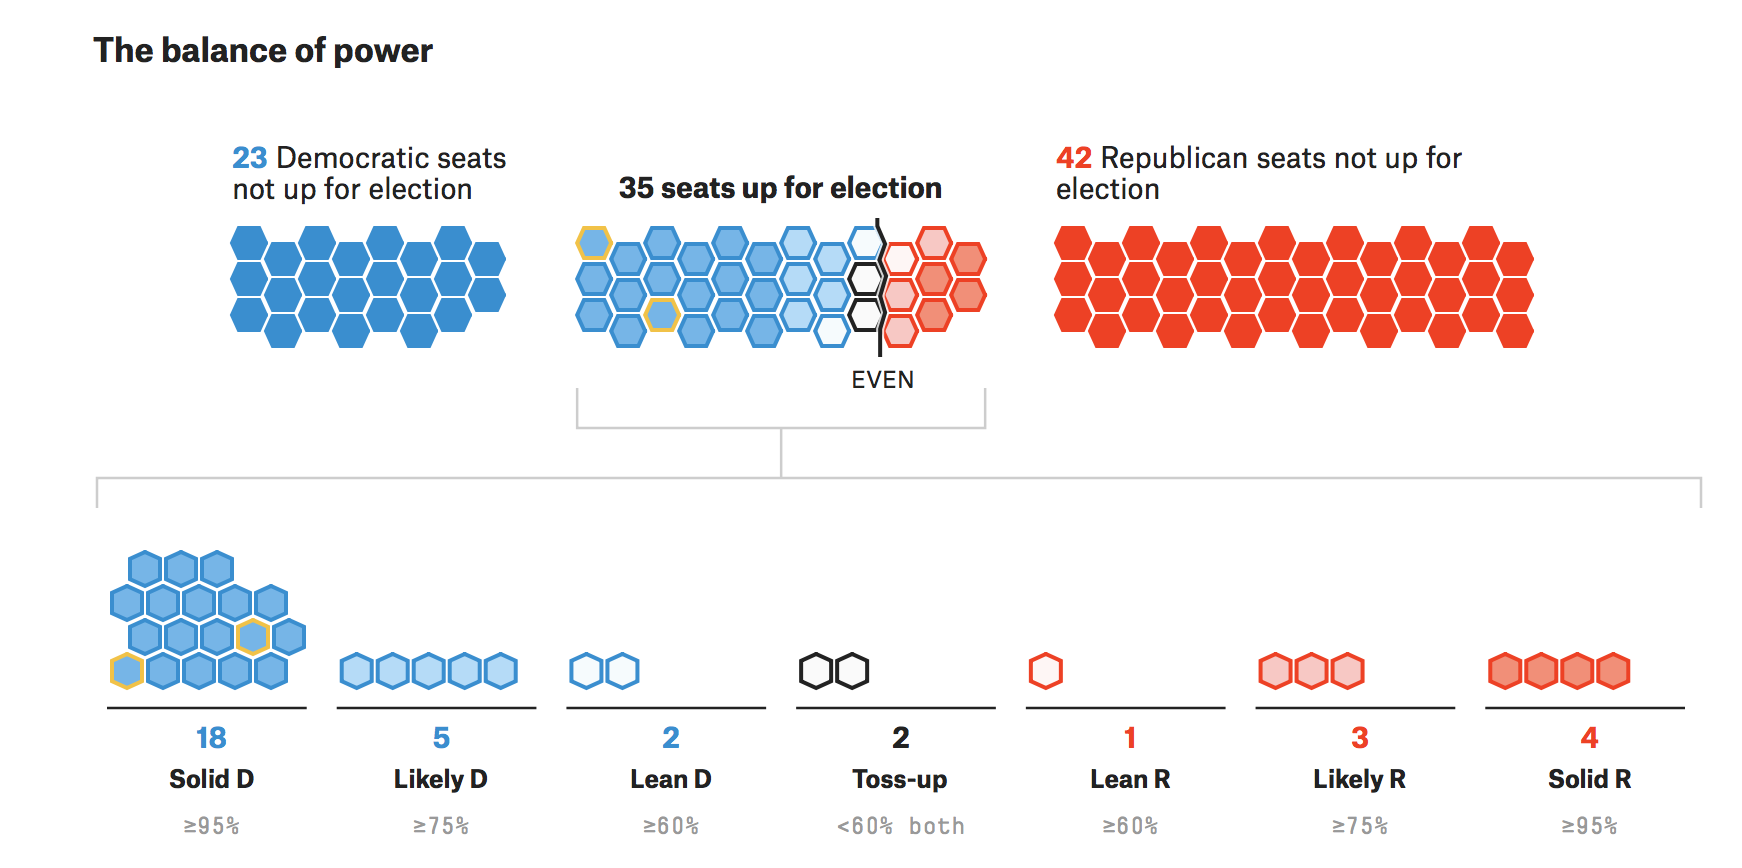 Senate seats up for re-election and the parties that hold them.